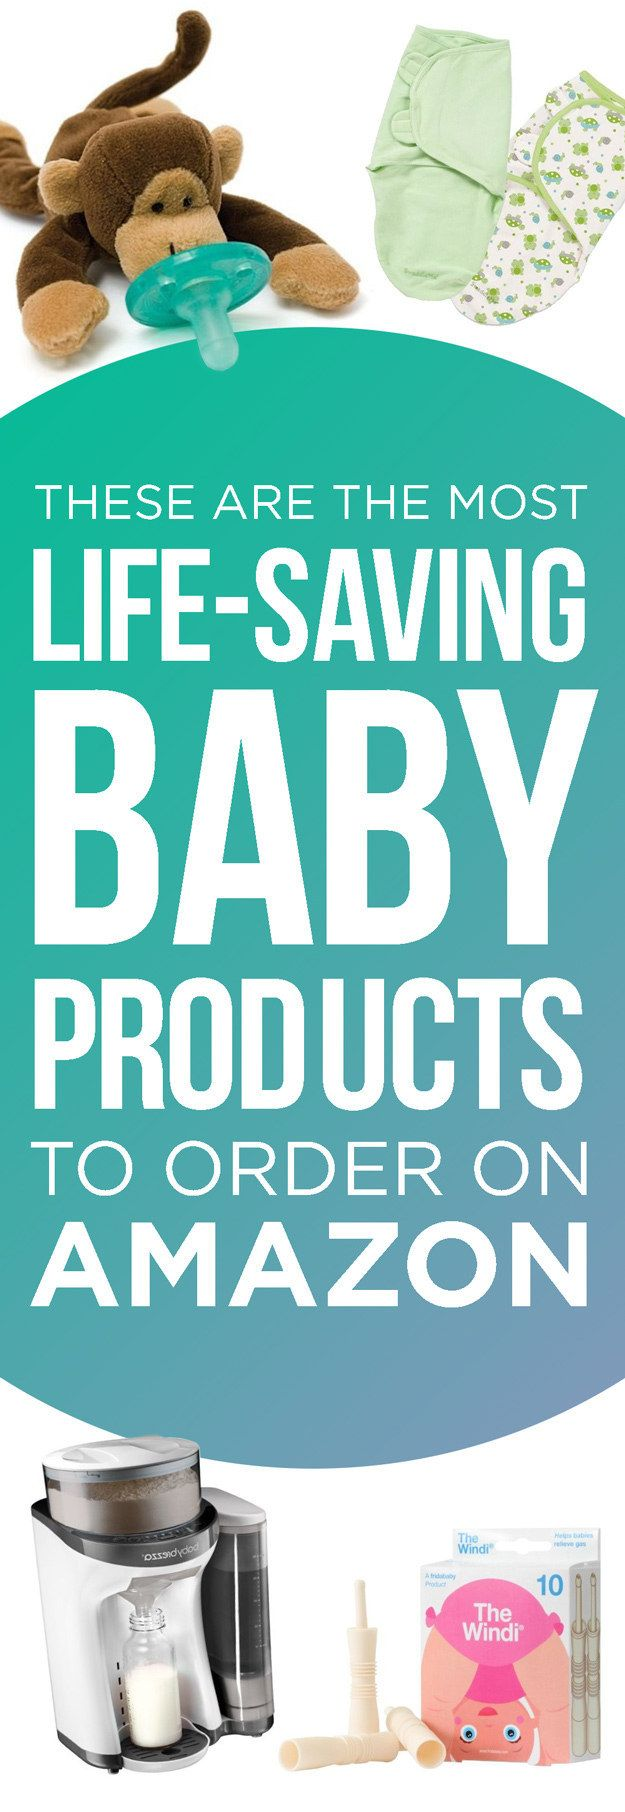 http://www.buzzfeed.com/sallykaplan/these-are-the-best-baby-products-you-can-order-on-amazon